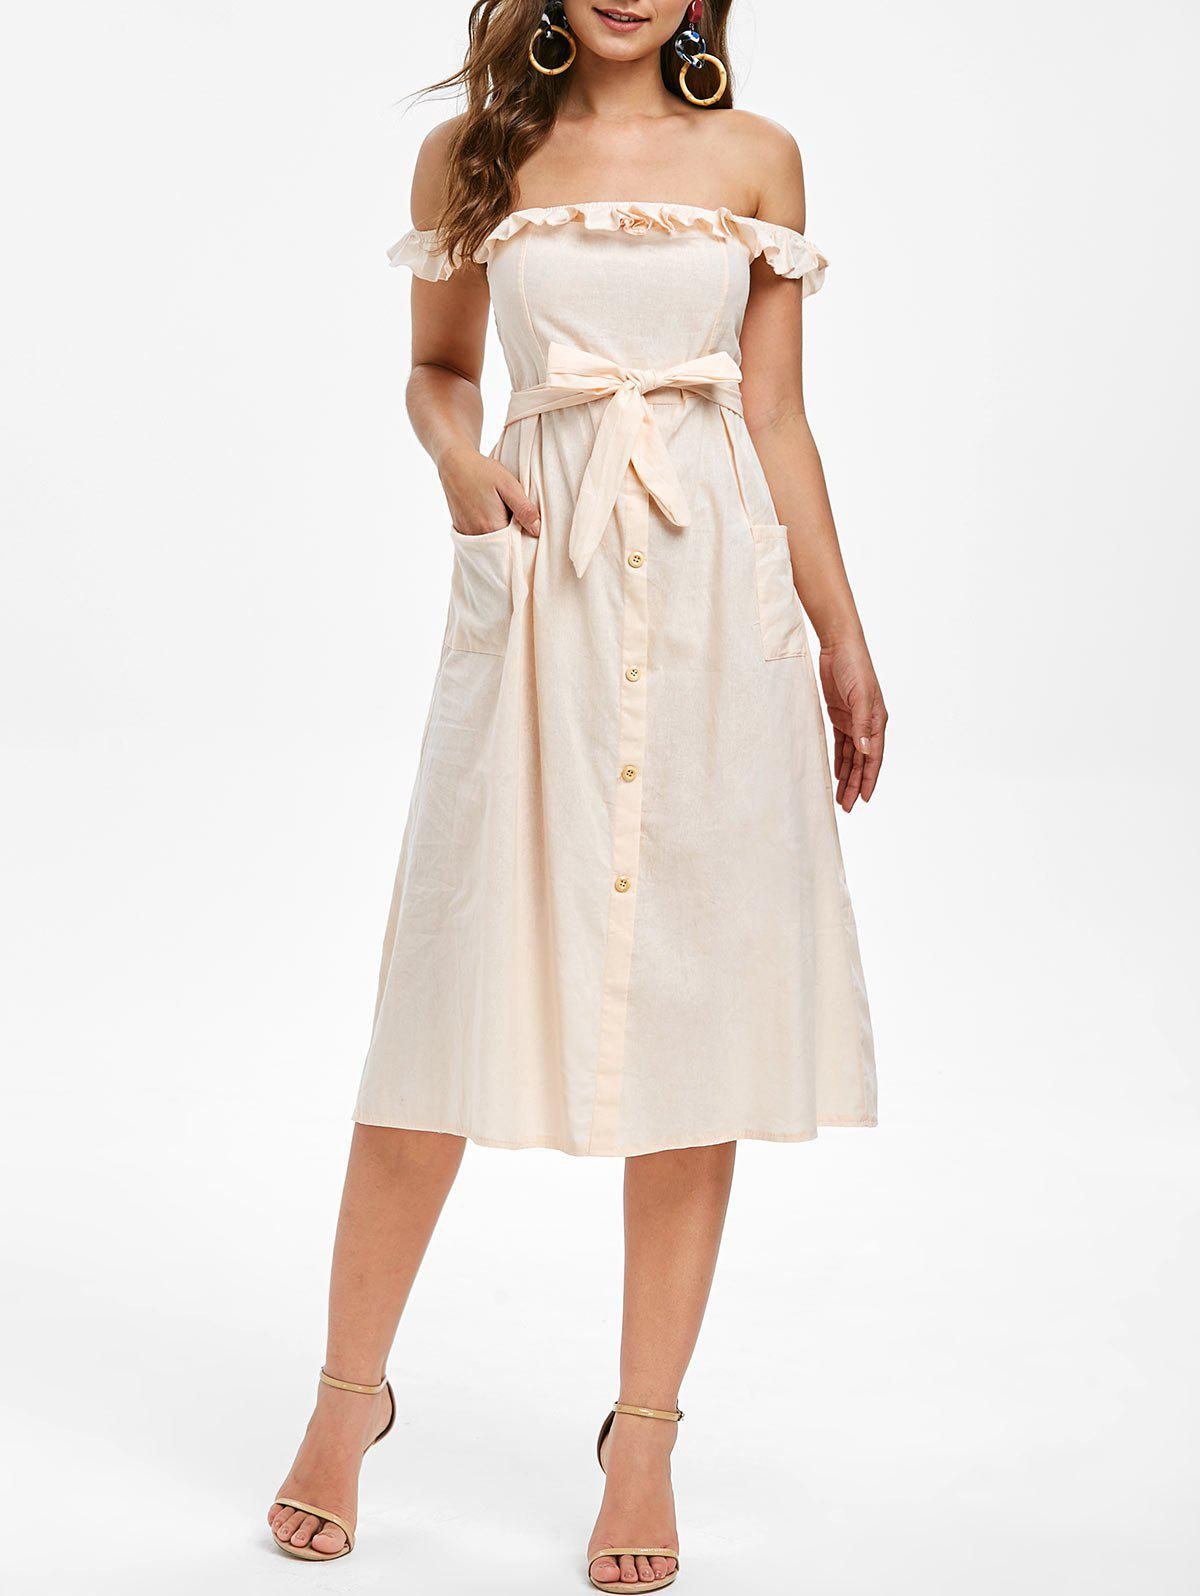 Ruffled Off Shoulder Belted A Line Dress - APRICOT XL